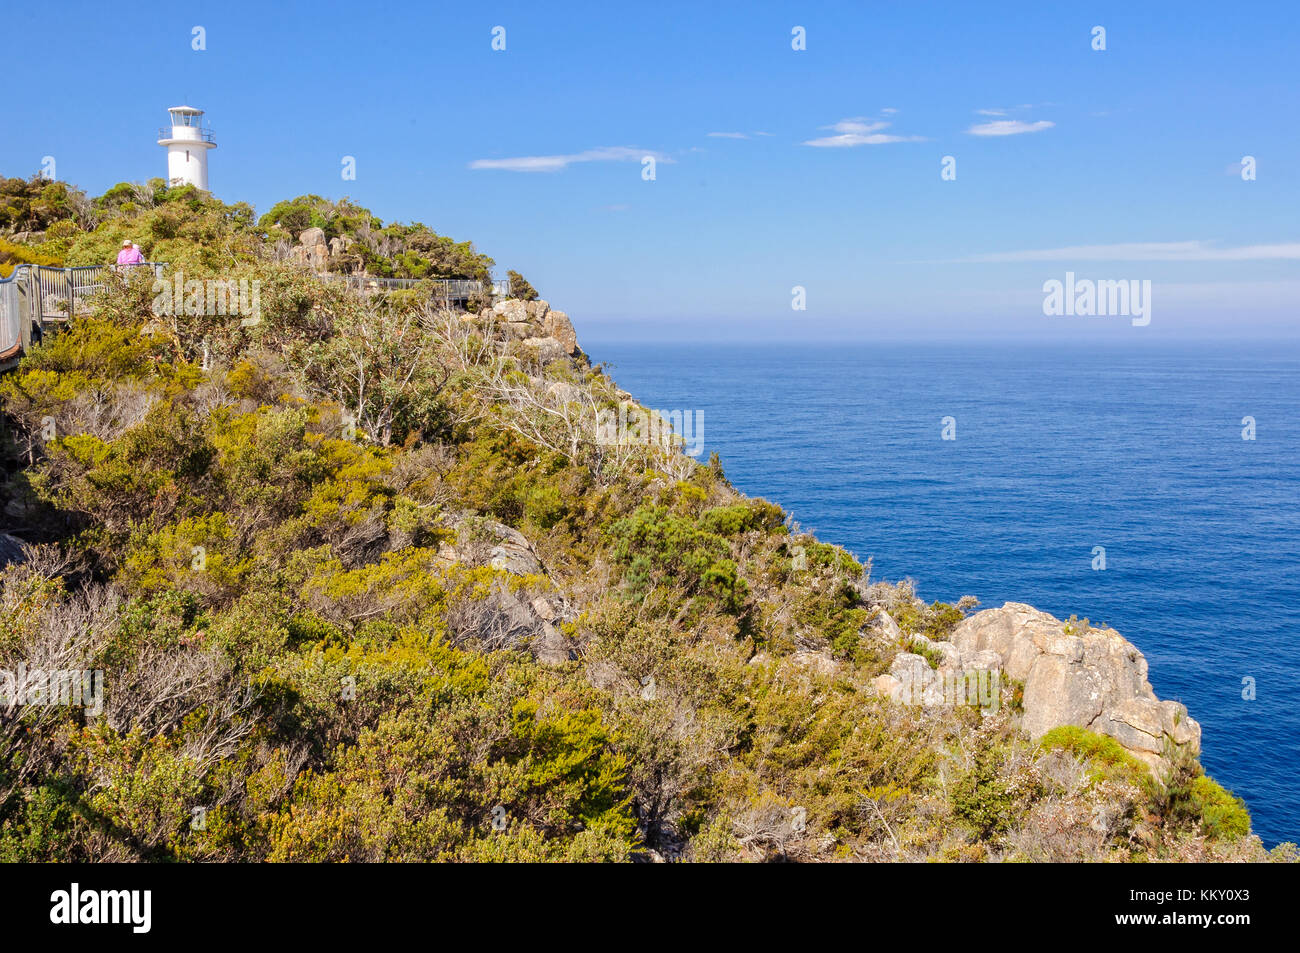 An unmanned, automatic lighthouse in the Freycinet National Park - Cape Tourville, Tasmania, Australia Stock Photo